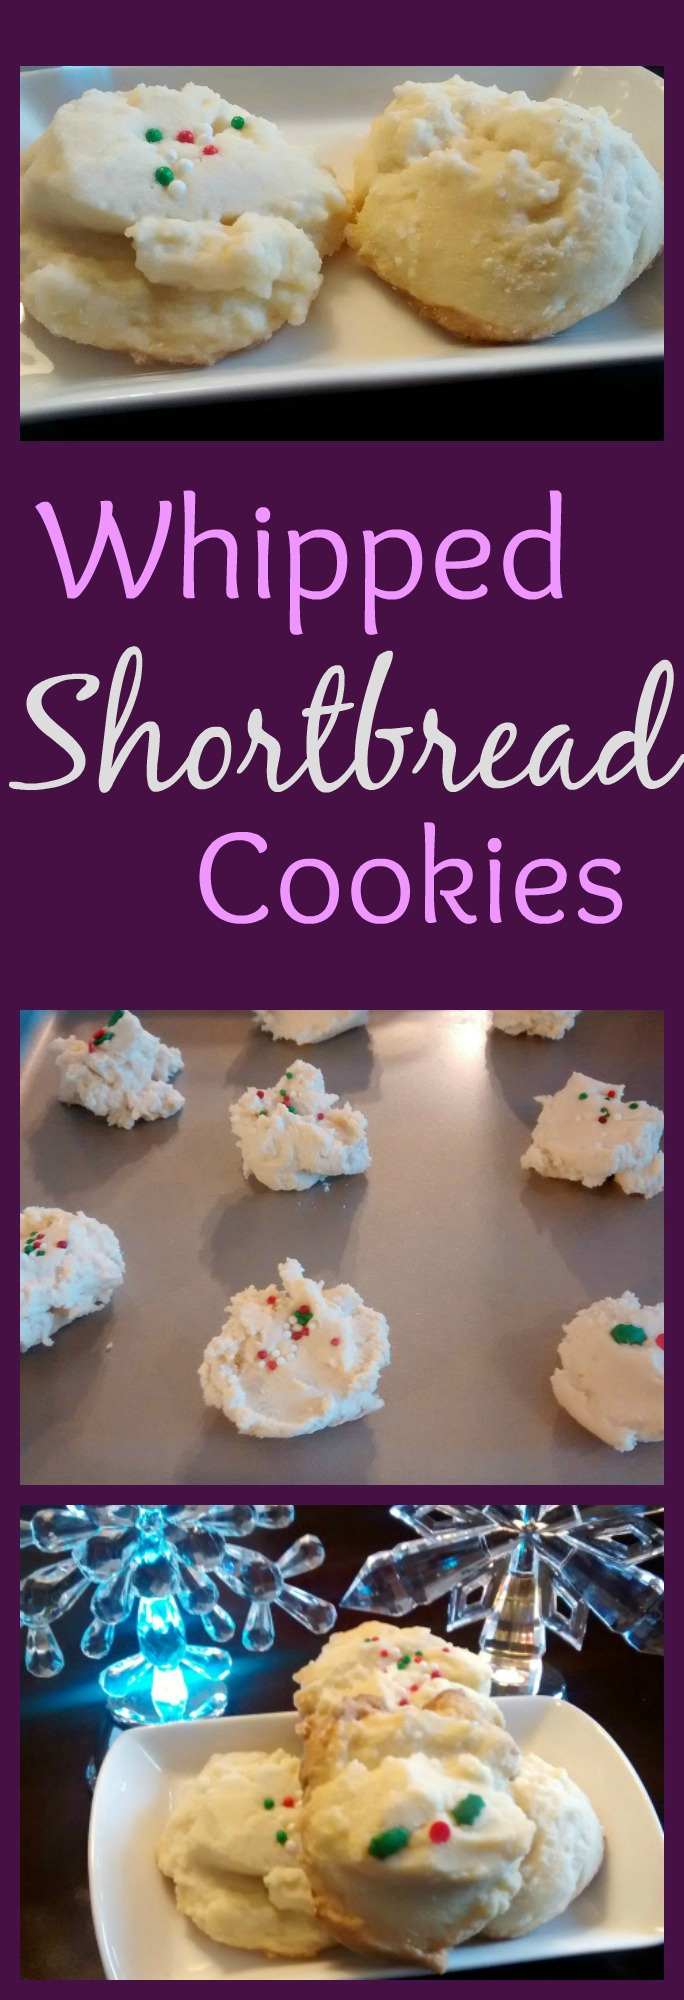 Whipped Shortbread The Olive Blogger Recipes Your Family Will Love